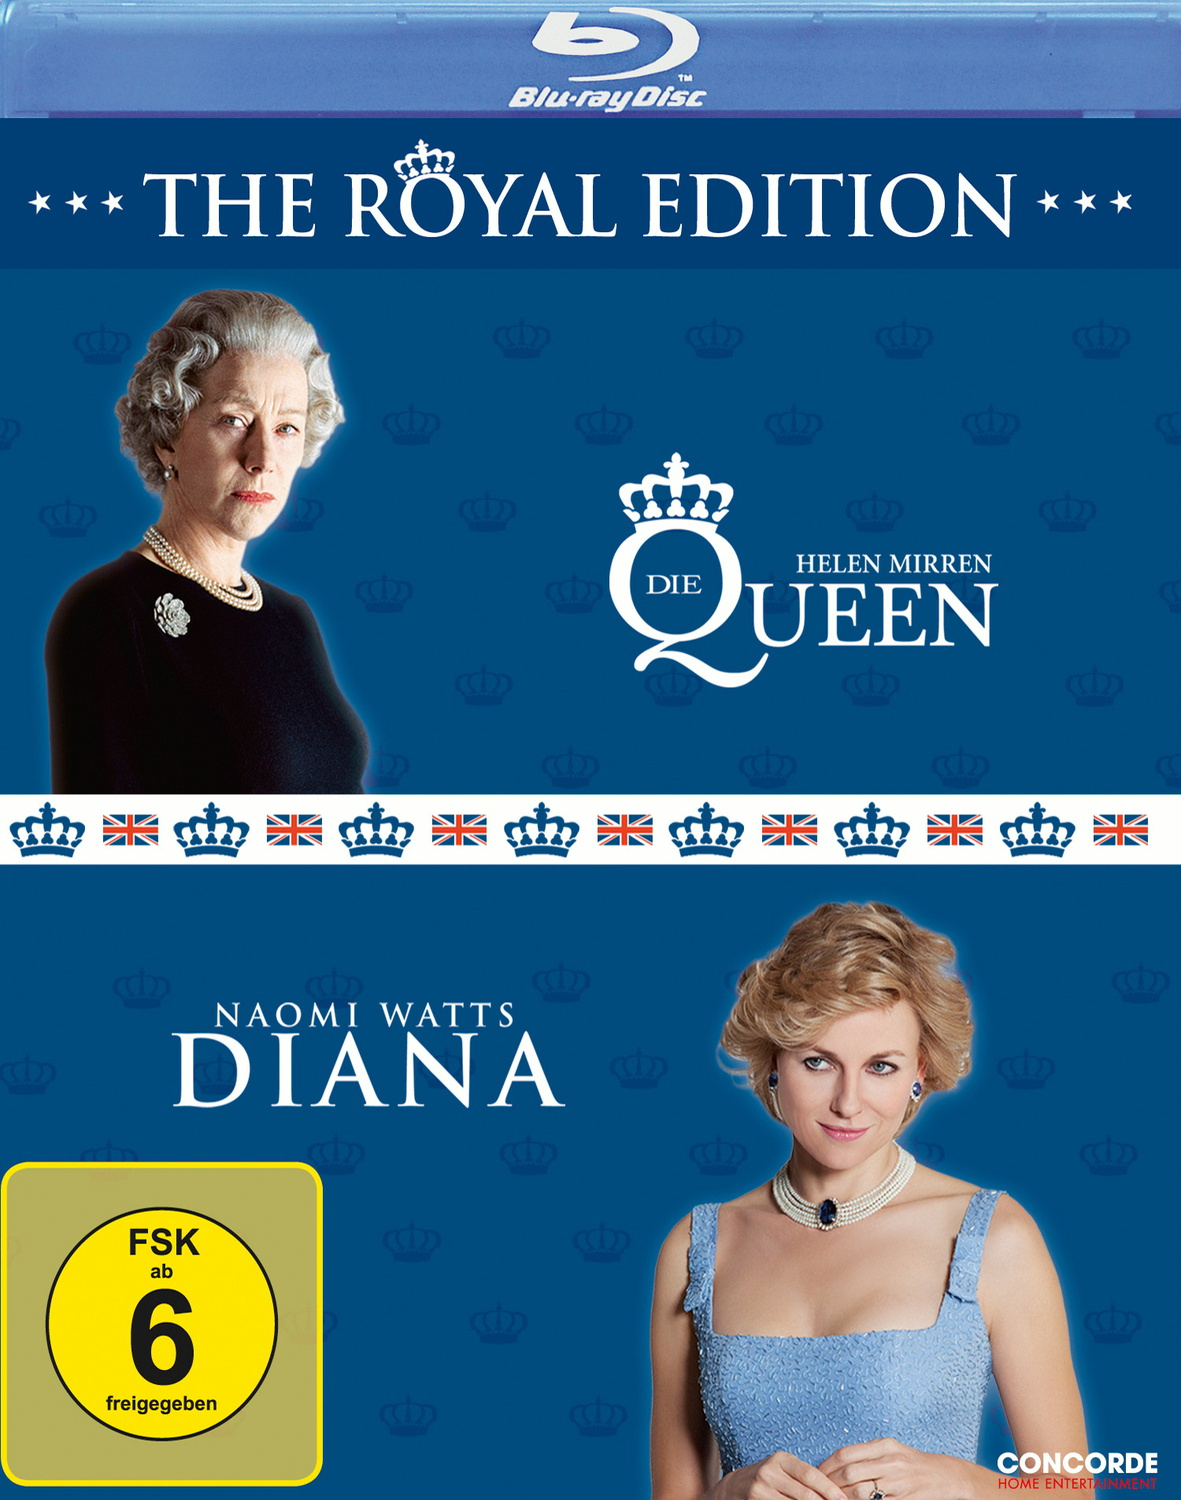 The Royal Edition - Die Queen/Lady Diana